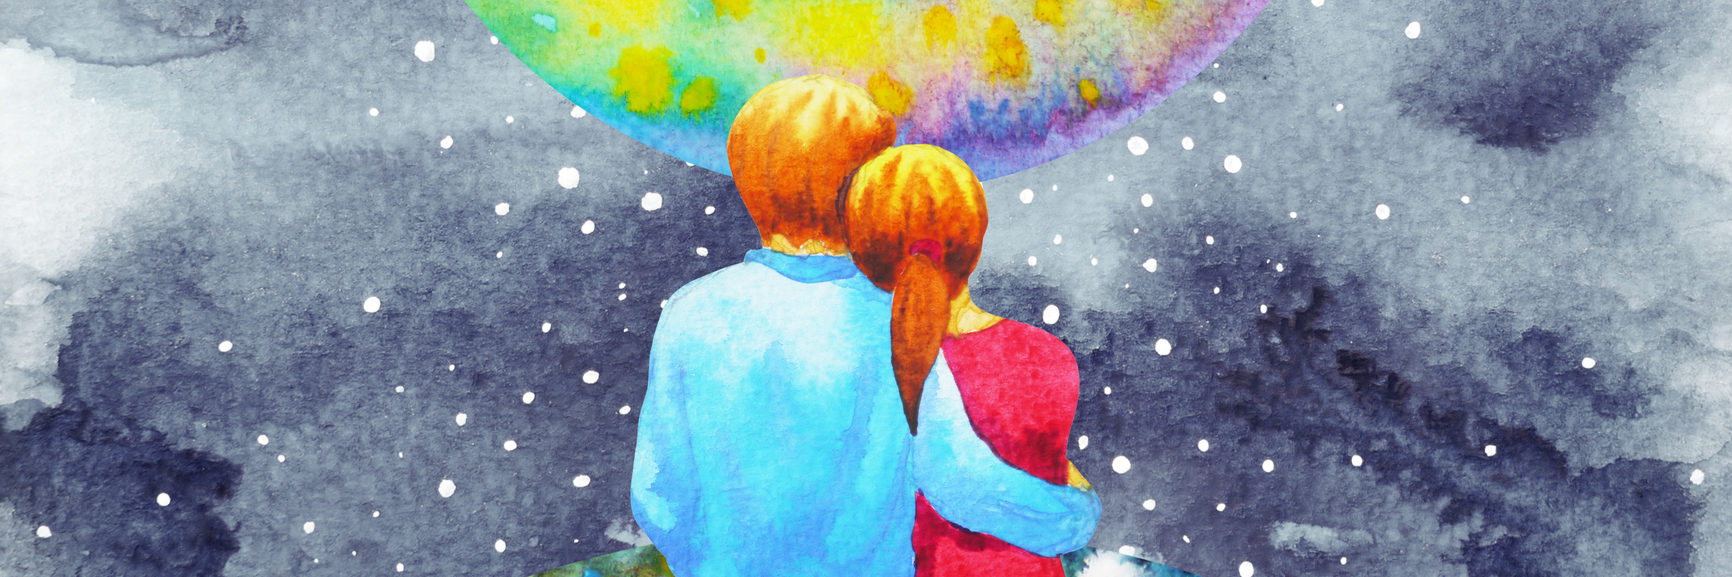 lovers couple sweet in the universe watercolor painting hand drawn